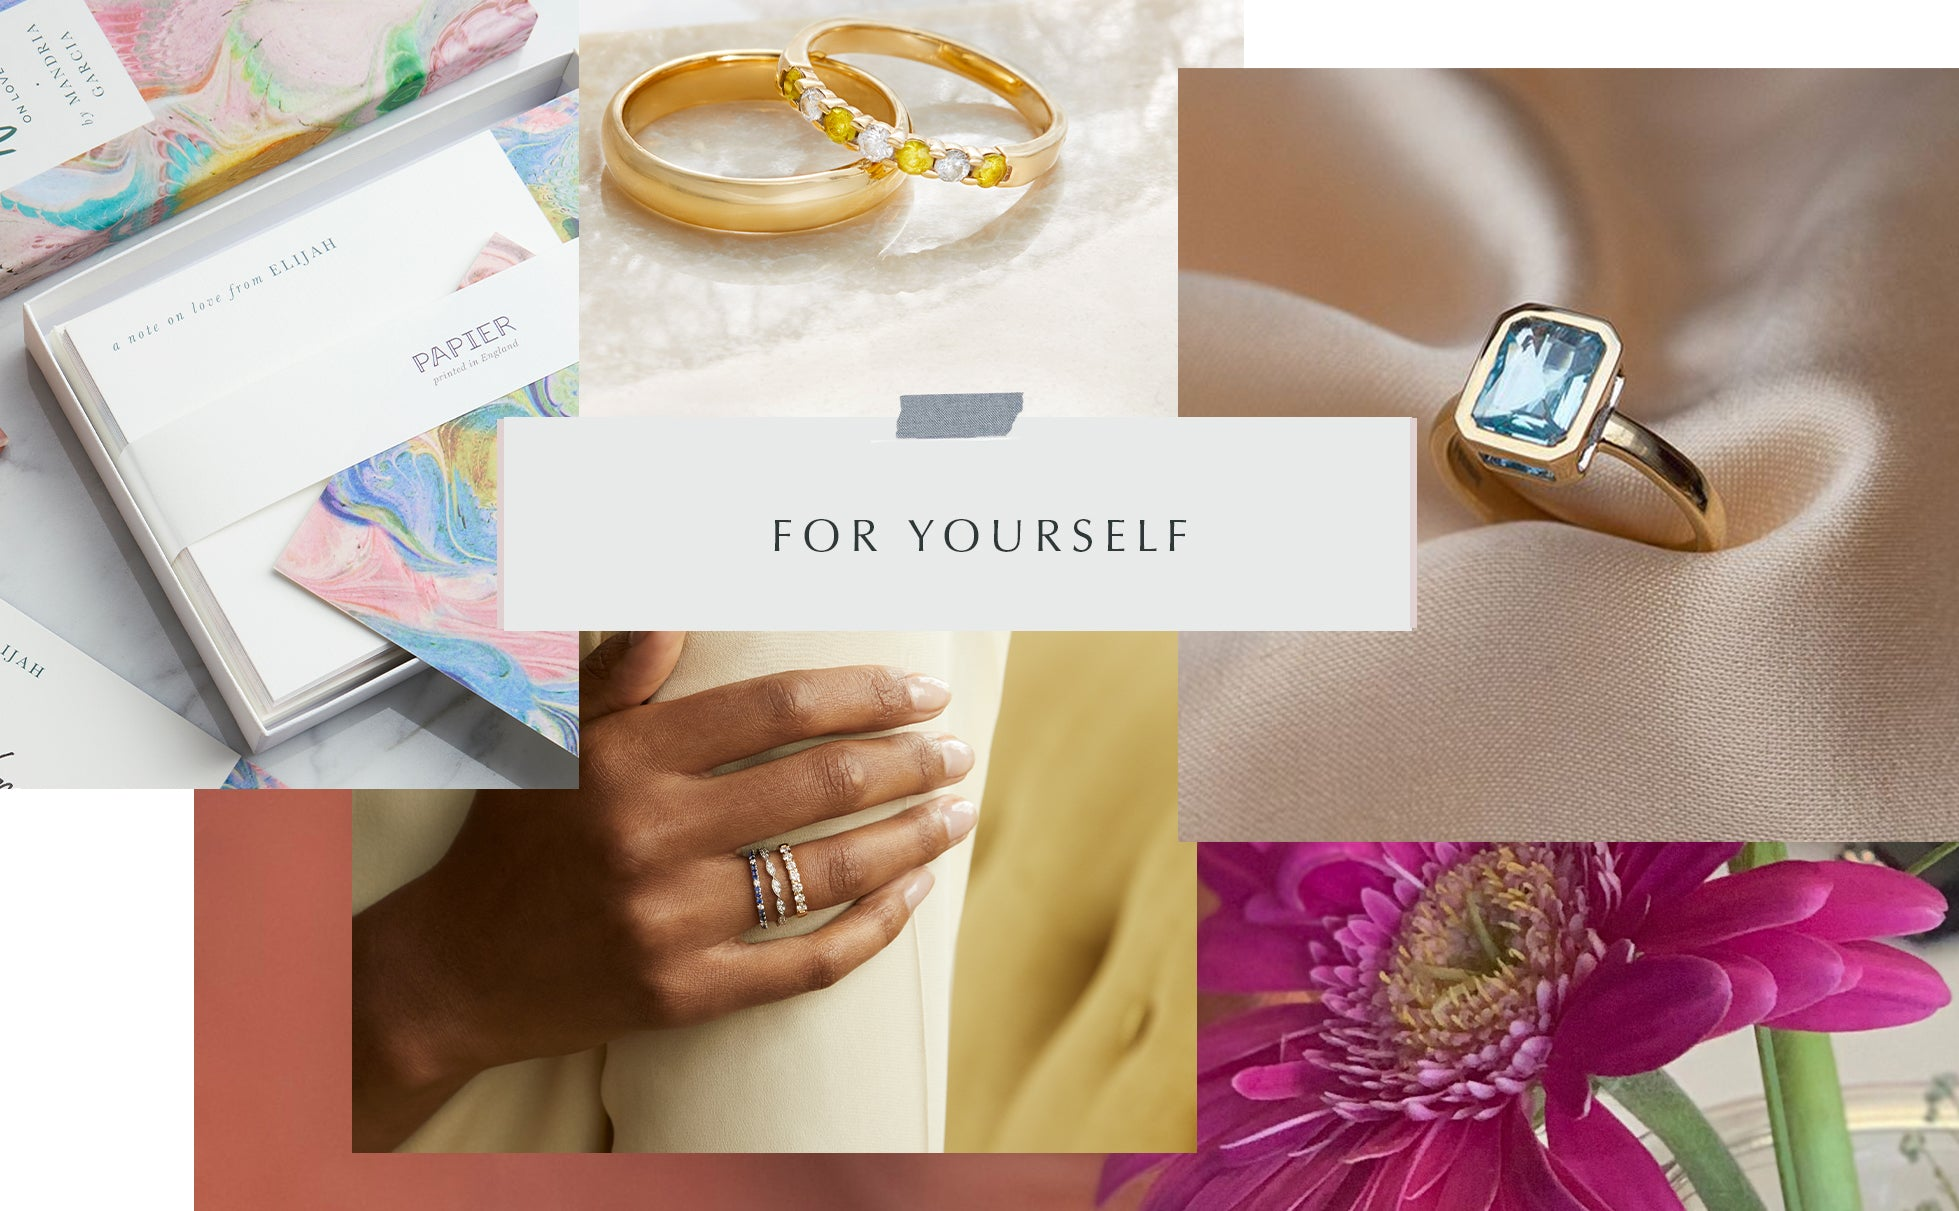 Self-gifting Gift Guide from Fenton, collage of images, including aquamarine and yellow sapphire rings.